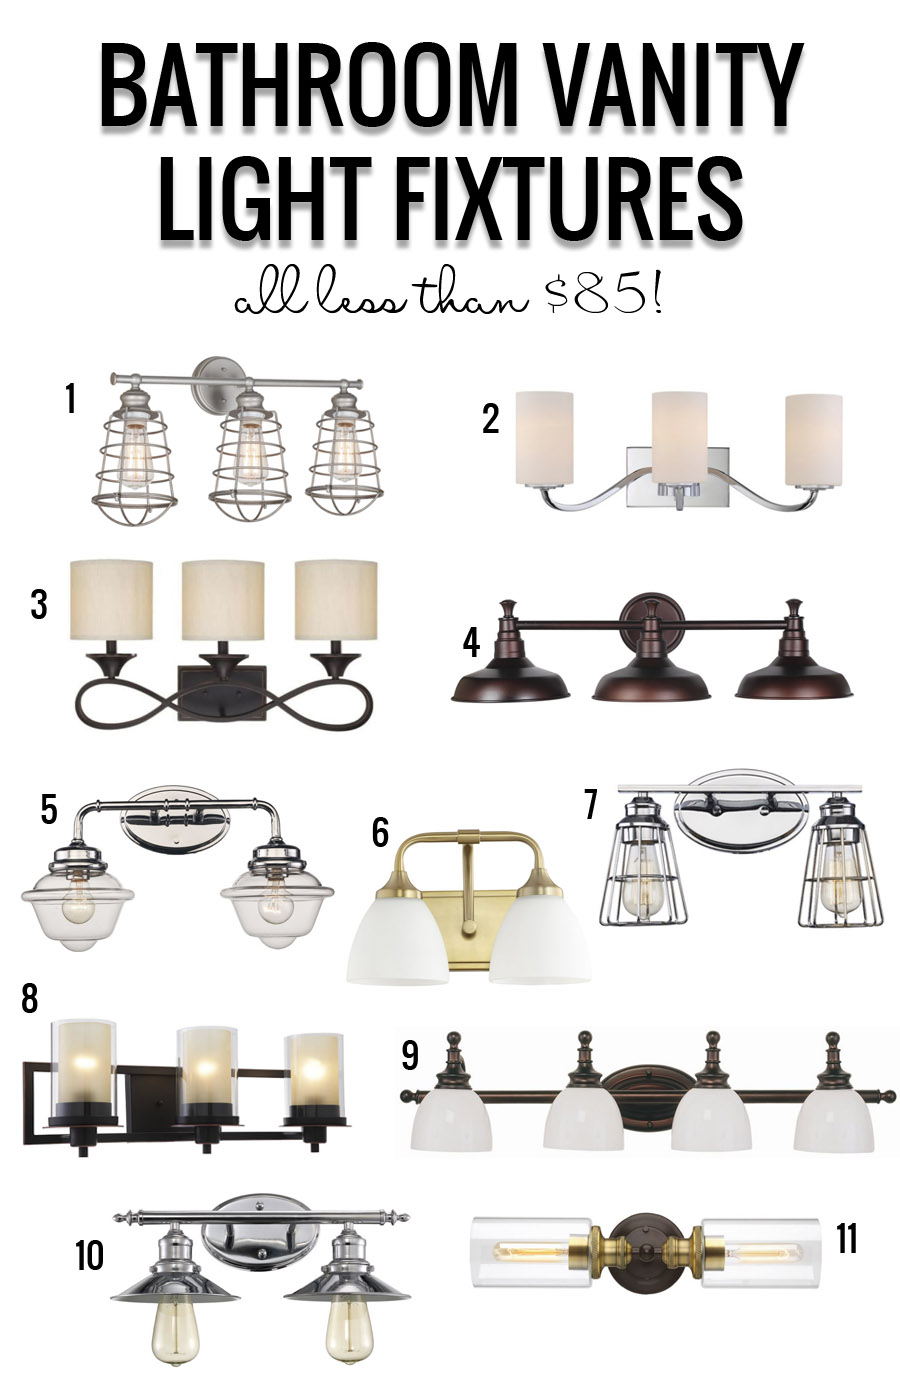 Bathroom Vanity Light Fixtures Under $85 featured on Remodelaholic.com